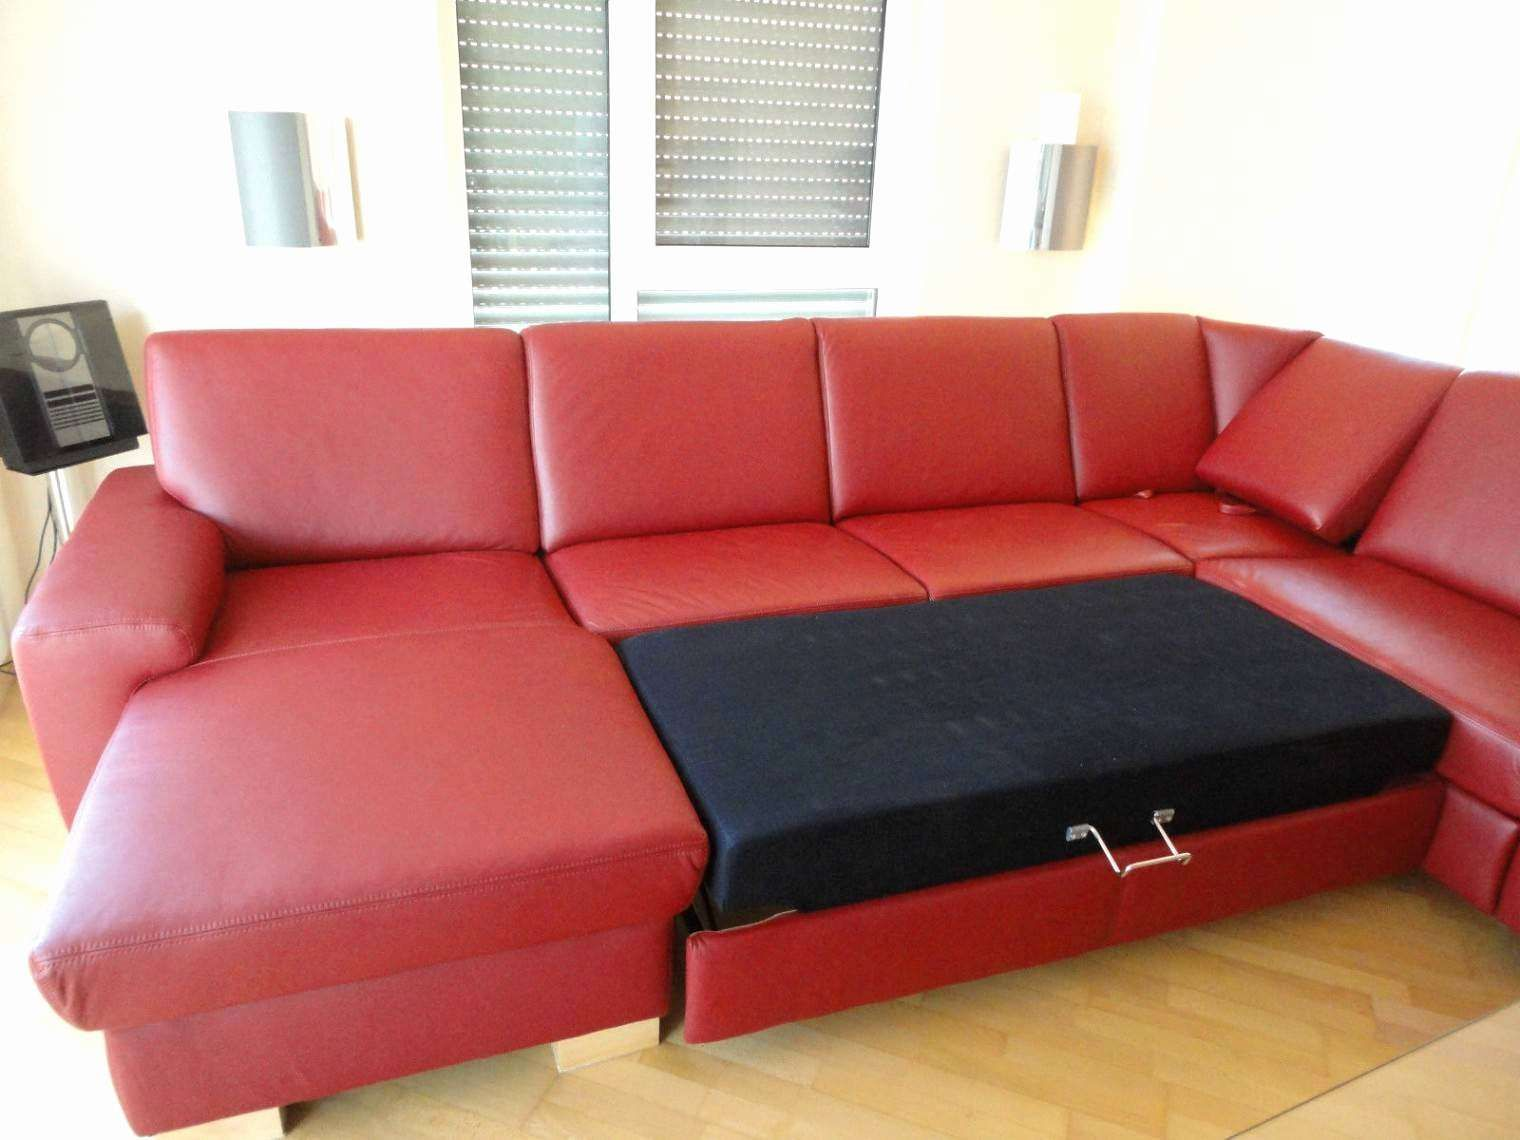 Ledercouch U Form Wohnlandschaft In U Form Xxl Sofa U Form Frisch Ledercouch L Form 25 Sofa U Form Xxl | Living Room Fans, Living Room Red, Blue Sofa Living